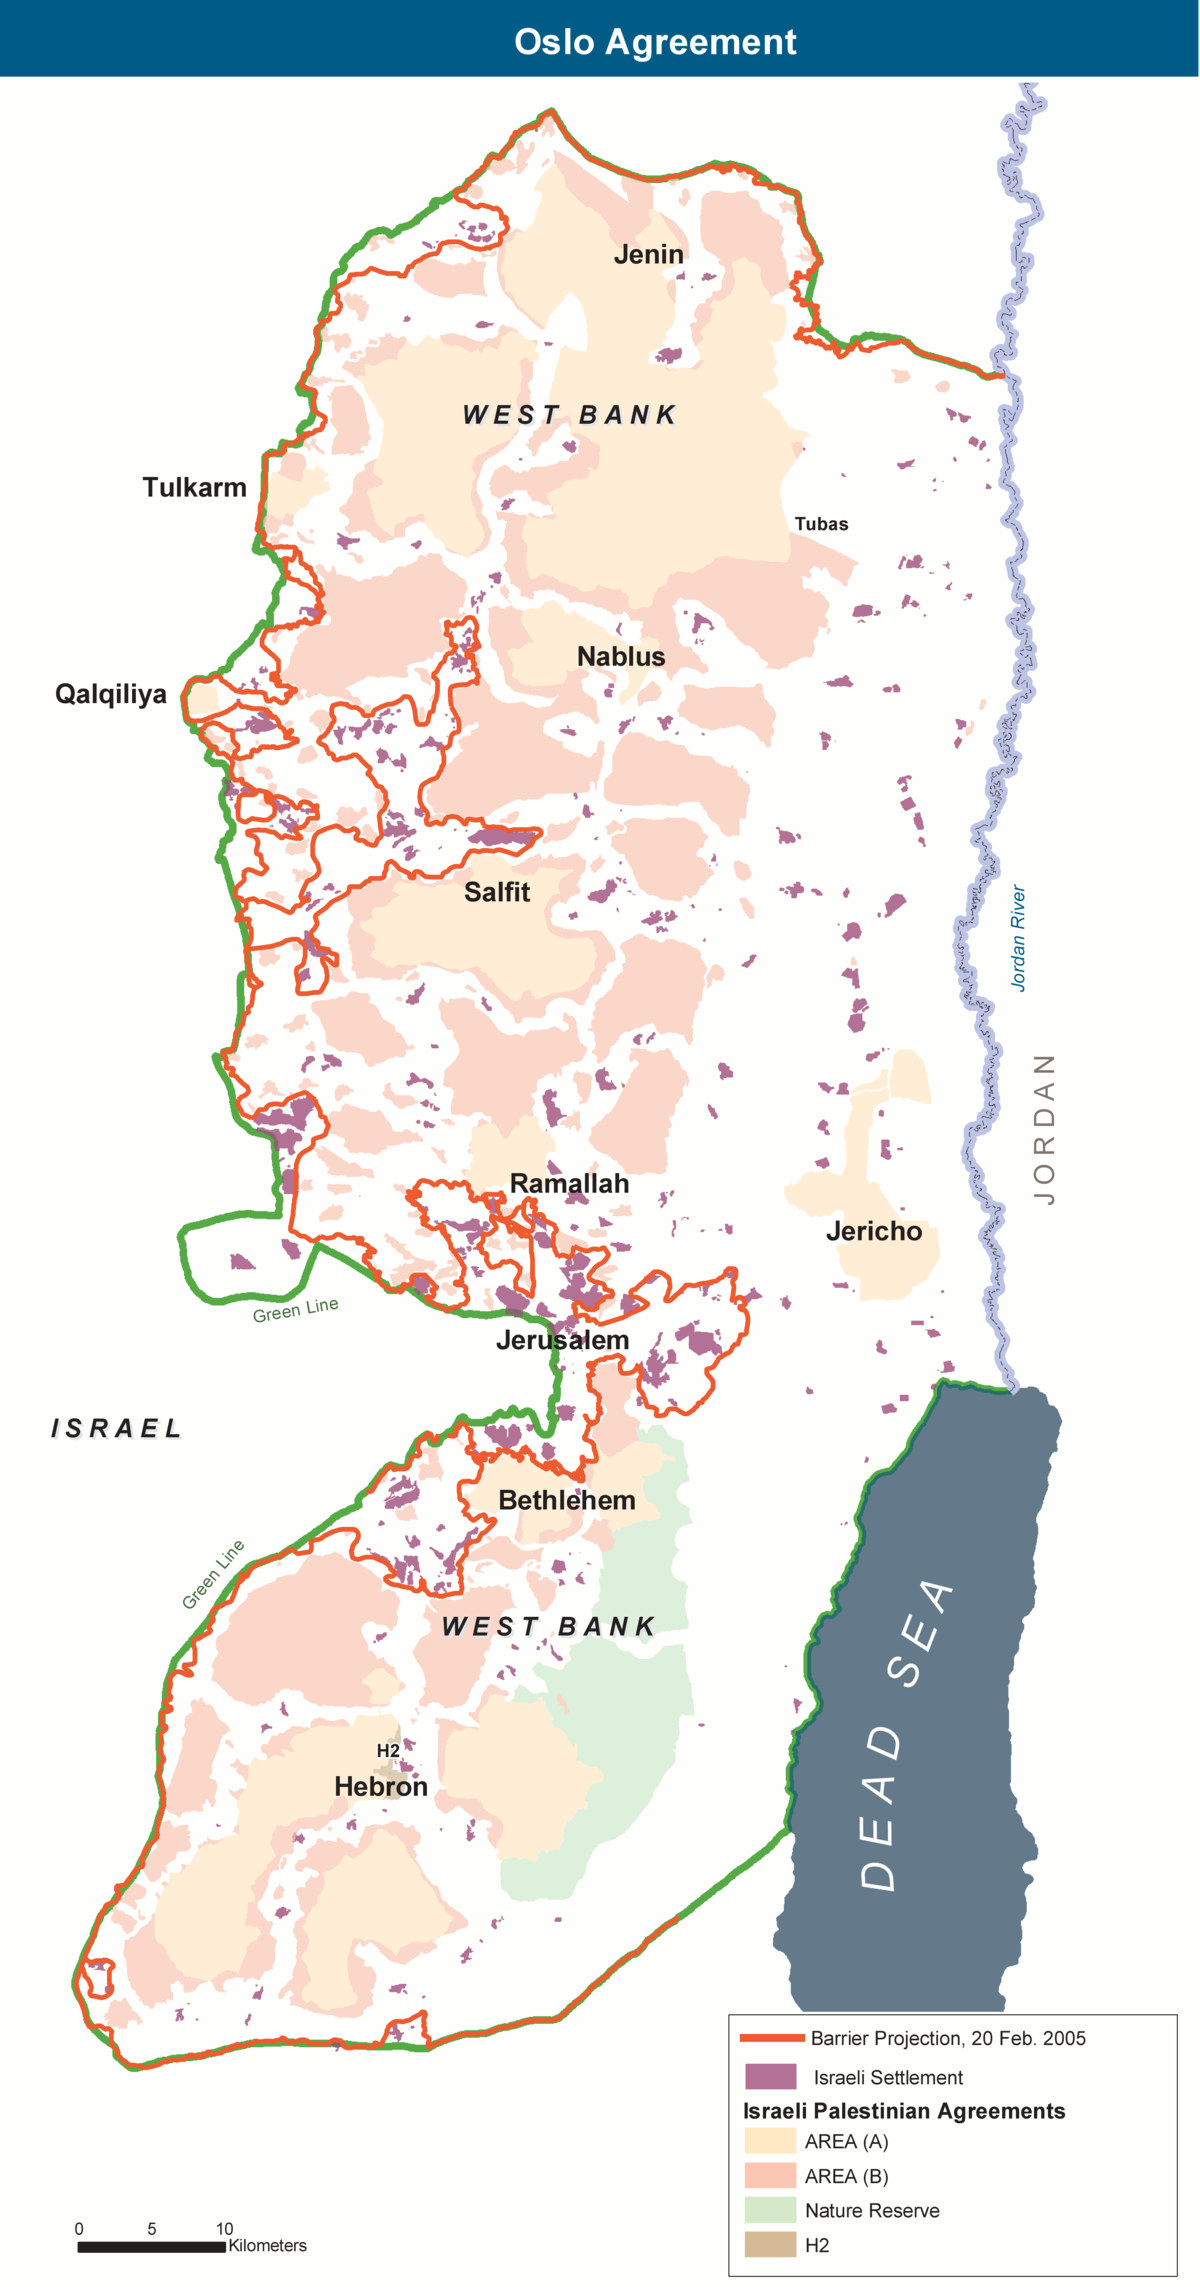 West Bank Areas in the Oslo II Accord  Wikipedia